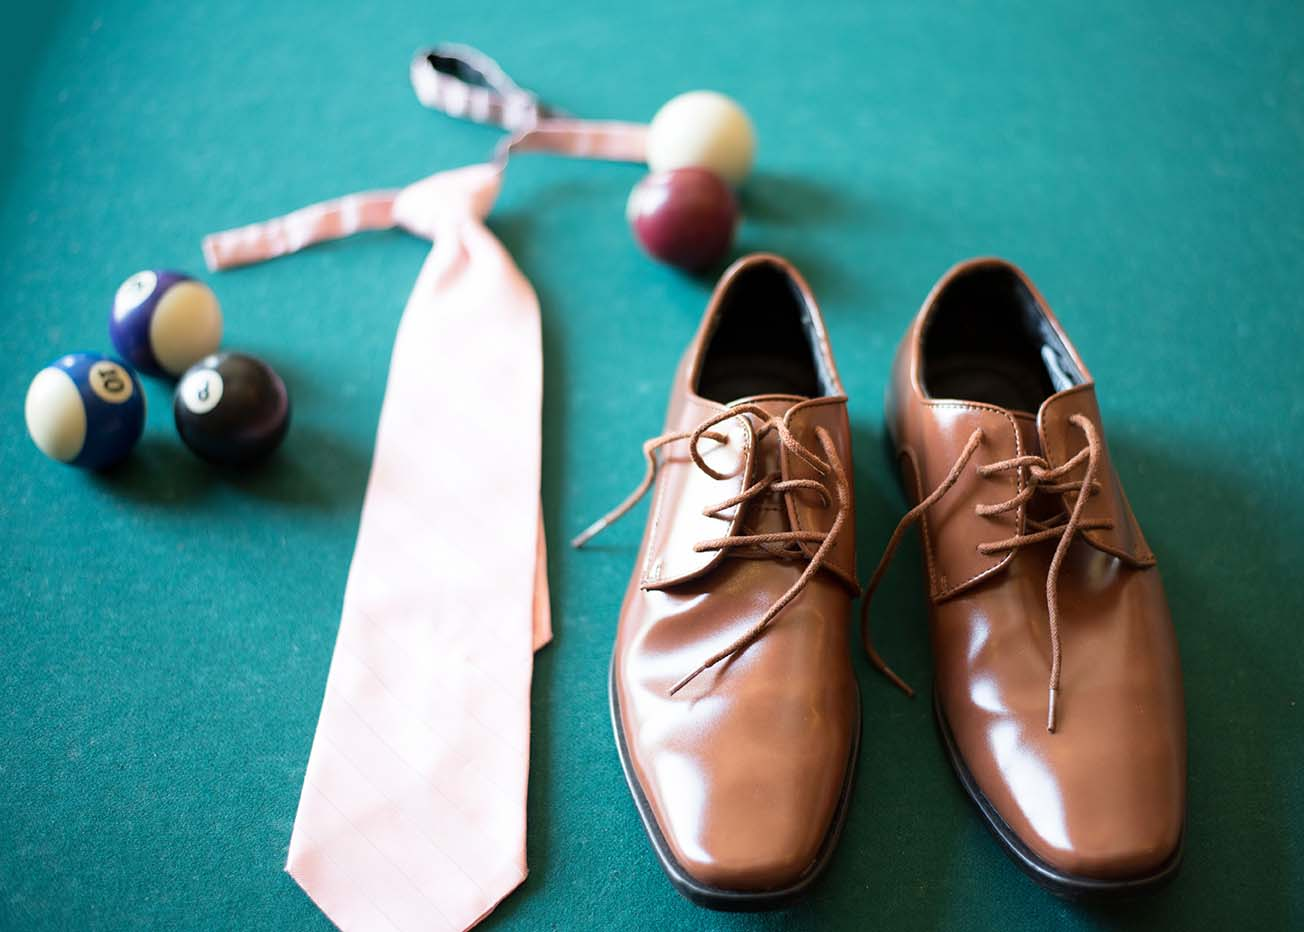 grooms shoes and tie on pool table